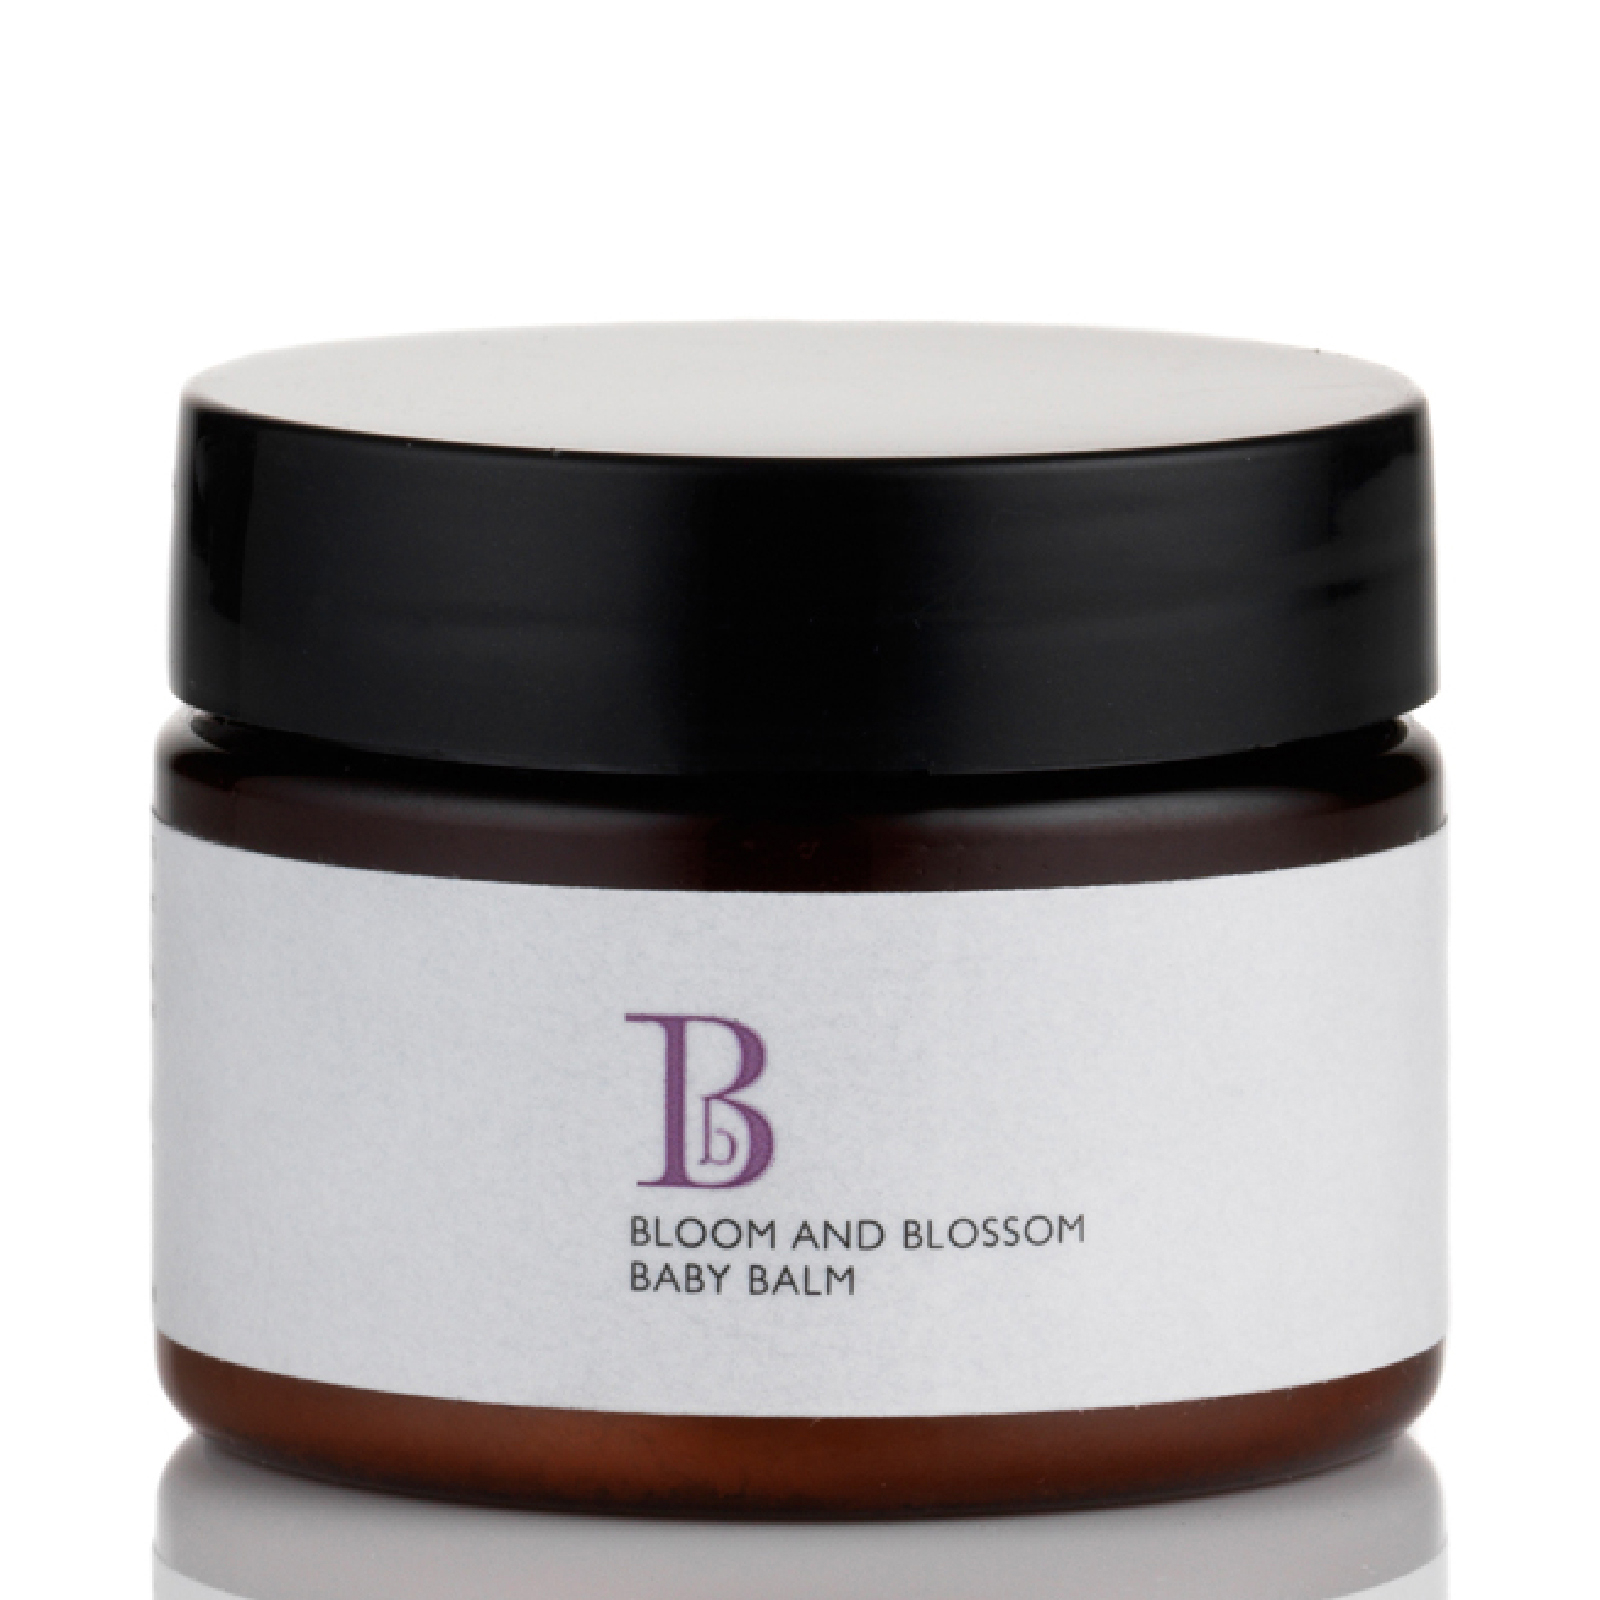 Bloom and Blossom Baby Balm (50ml)